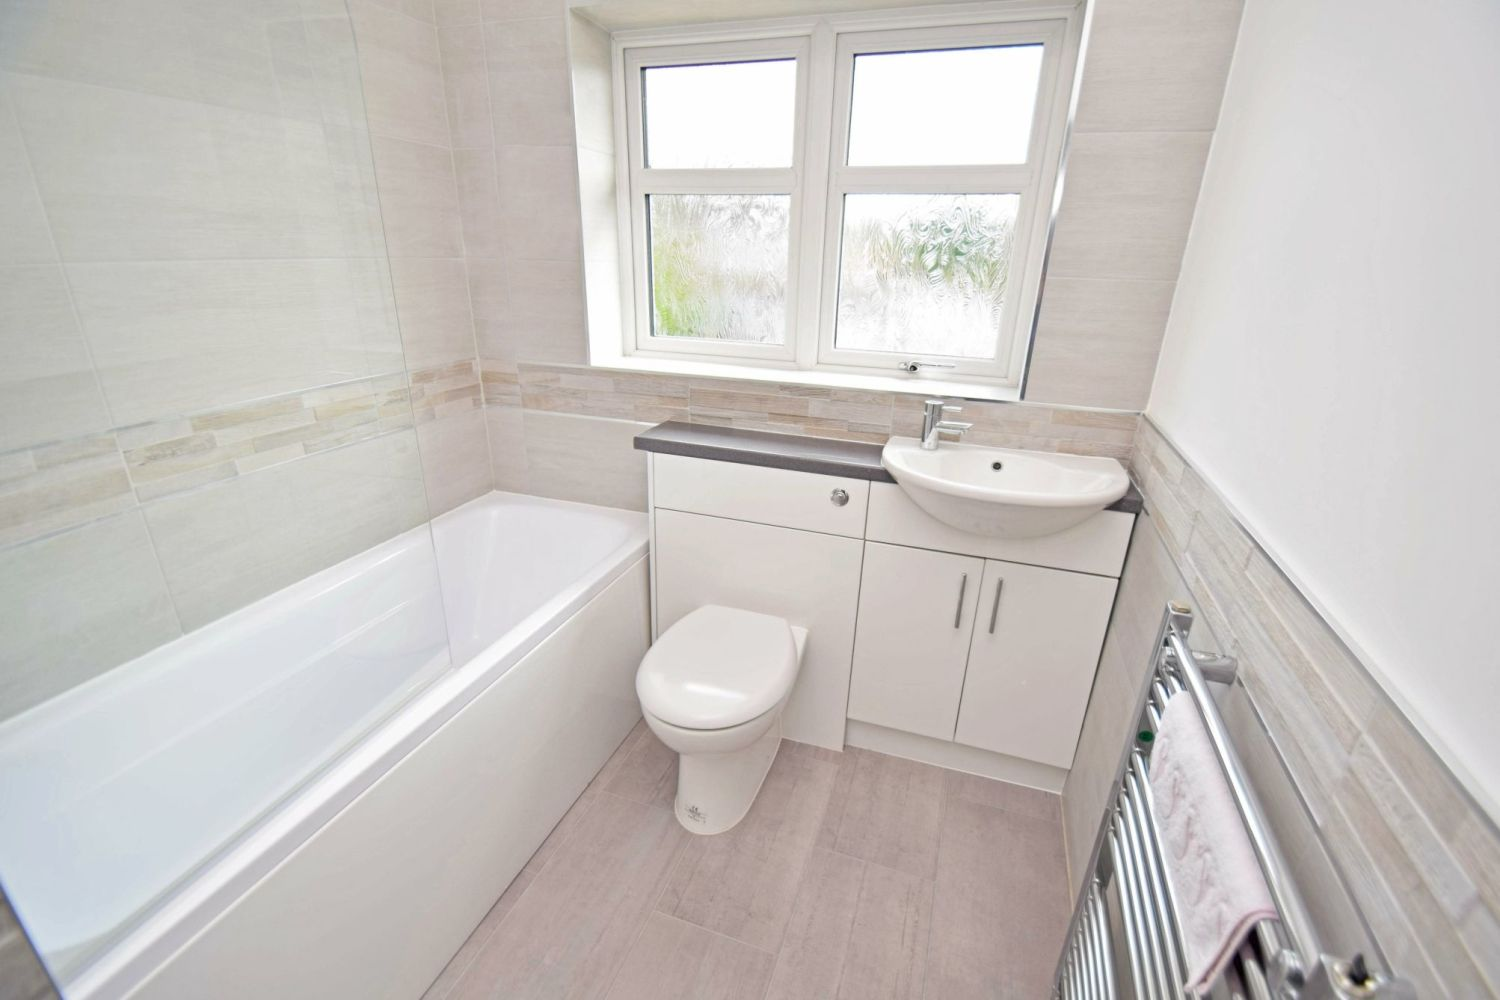 3 bed semi-detached for sale in Beachcroft Road, Wall Heath  - Property Image 11